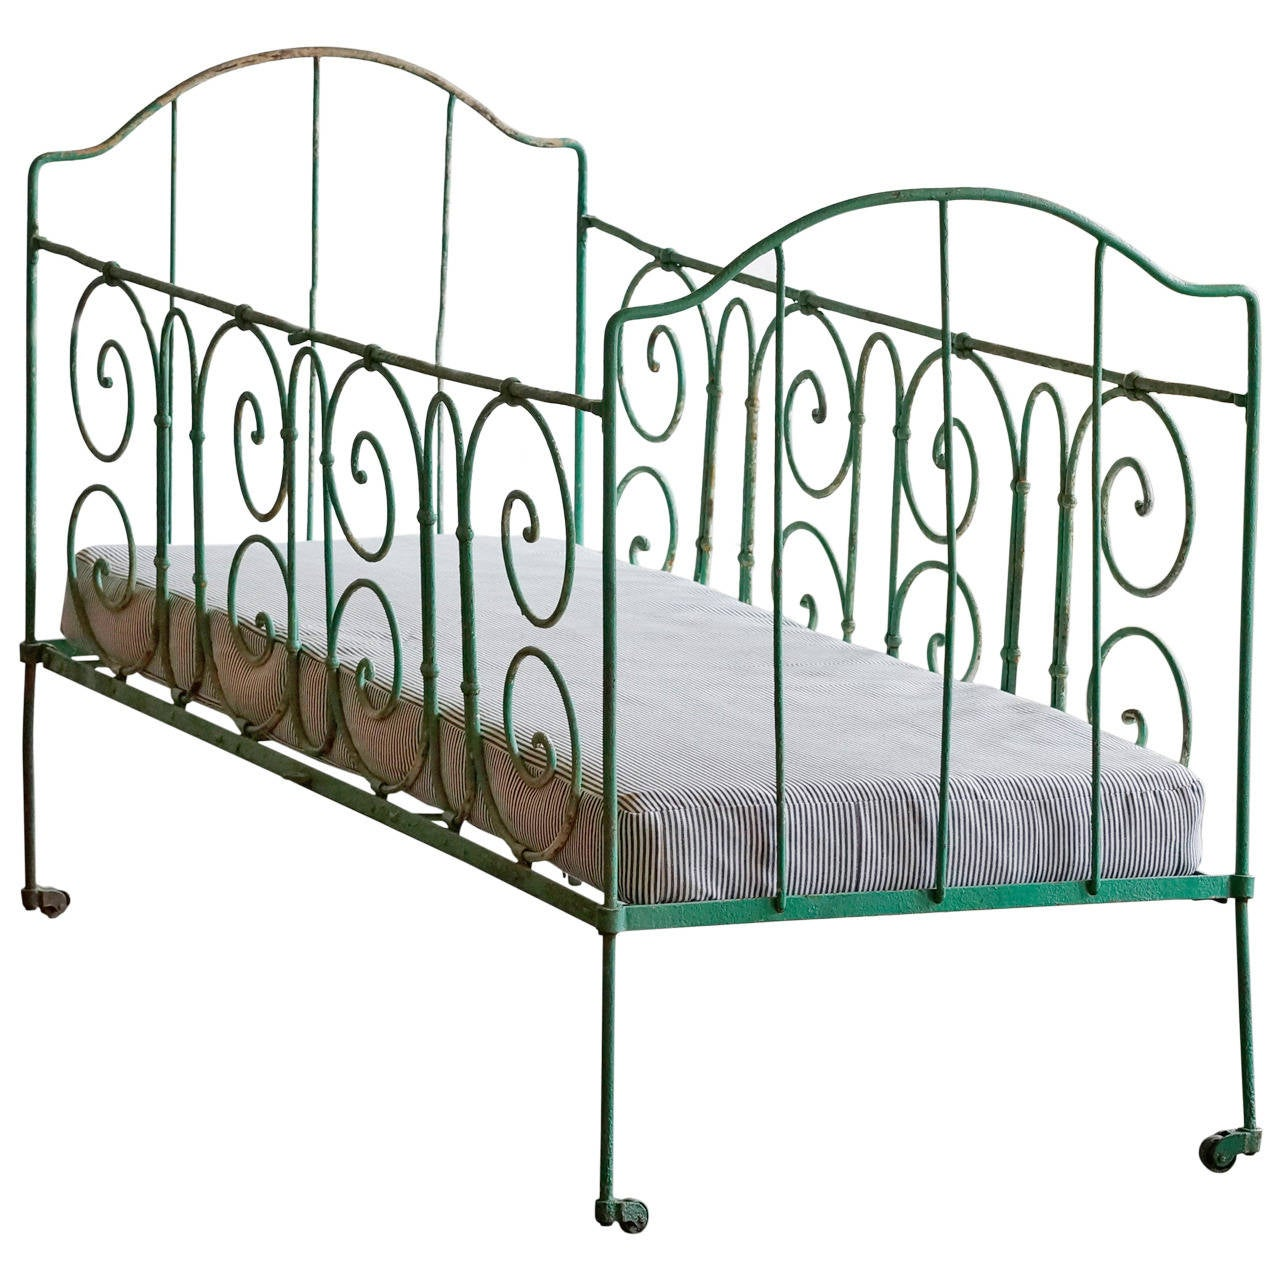 Antique french iron bed - Antique French Wrought Iron Baby Crib 1